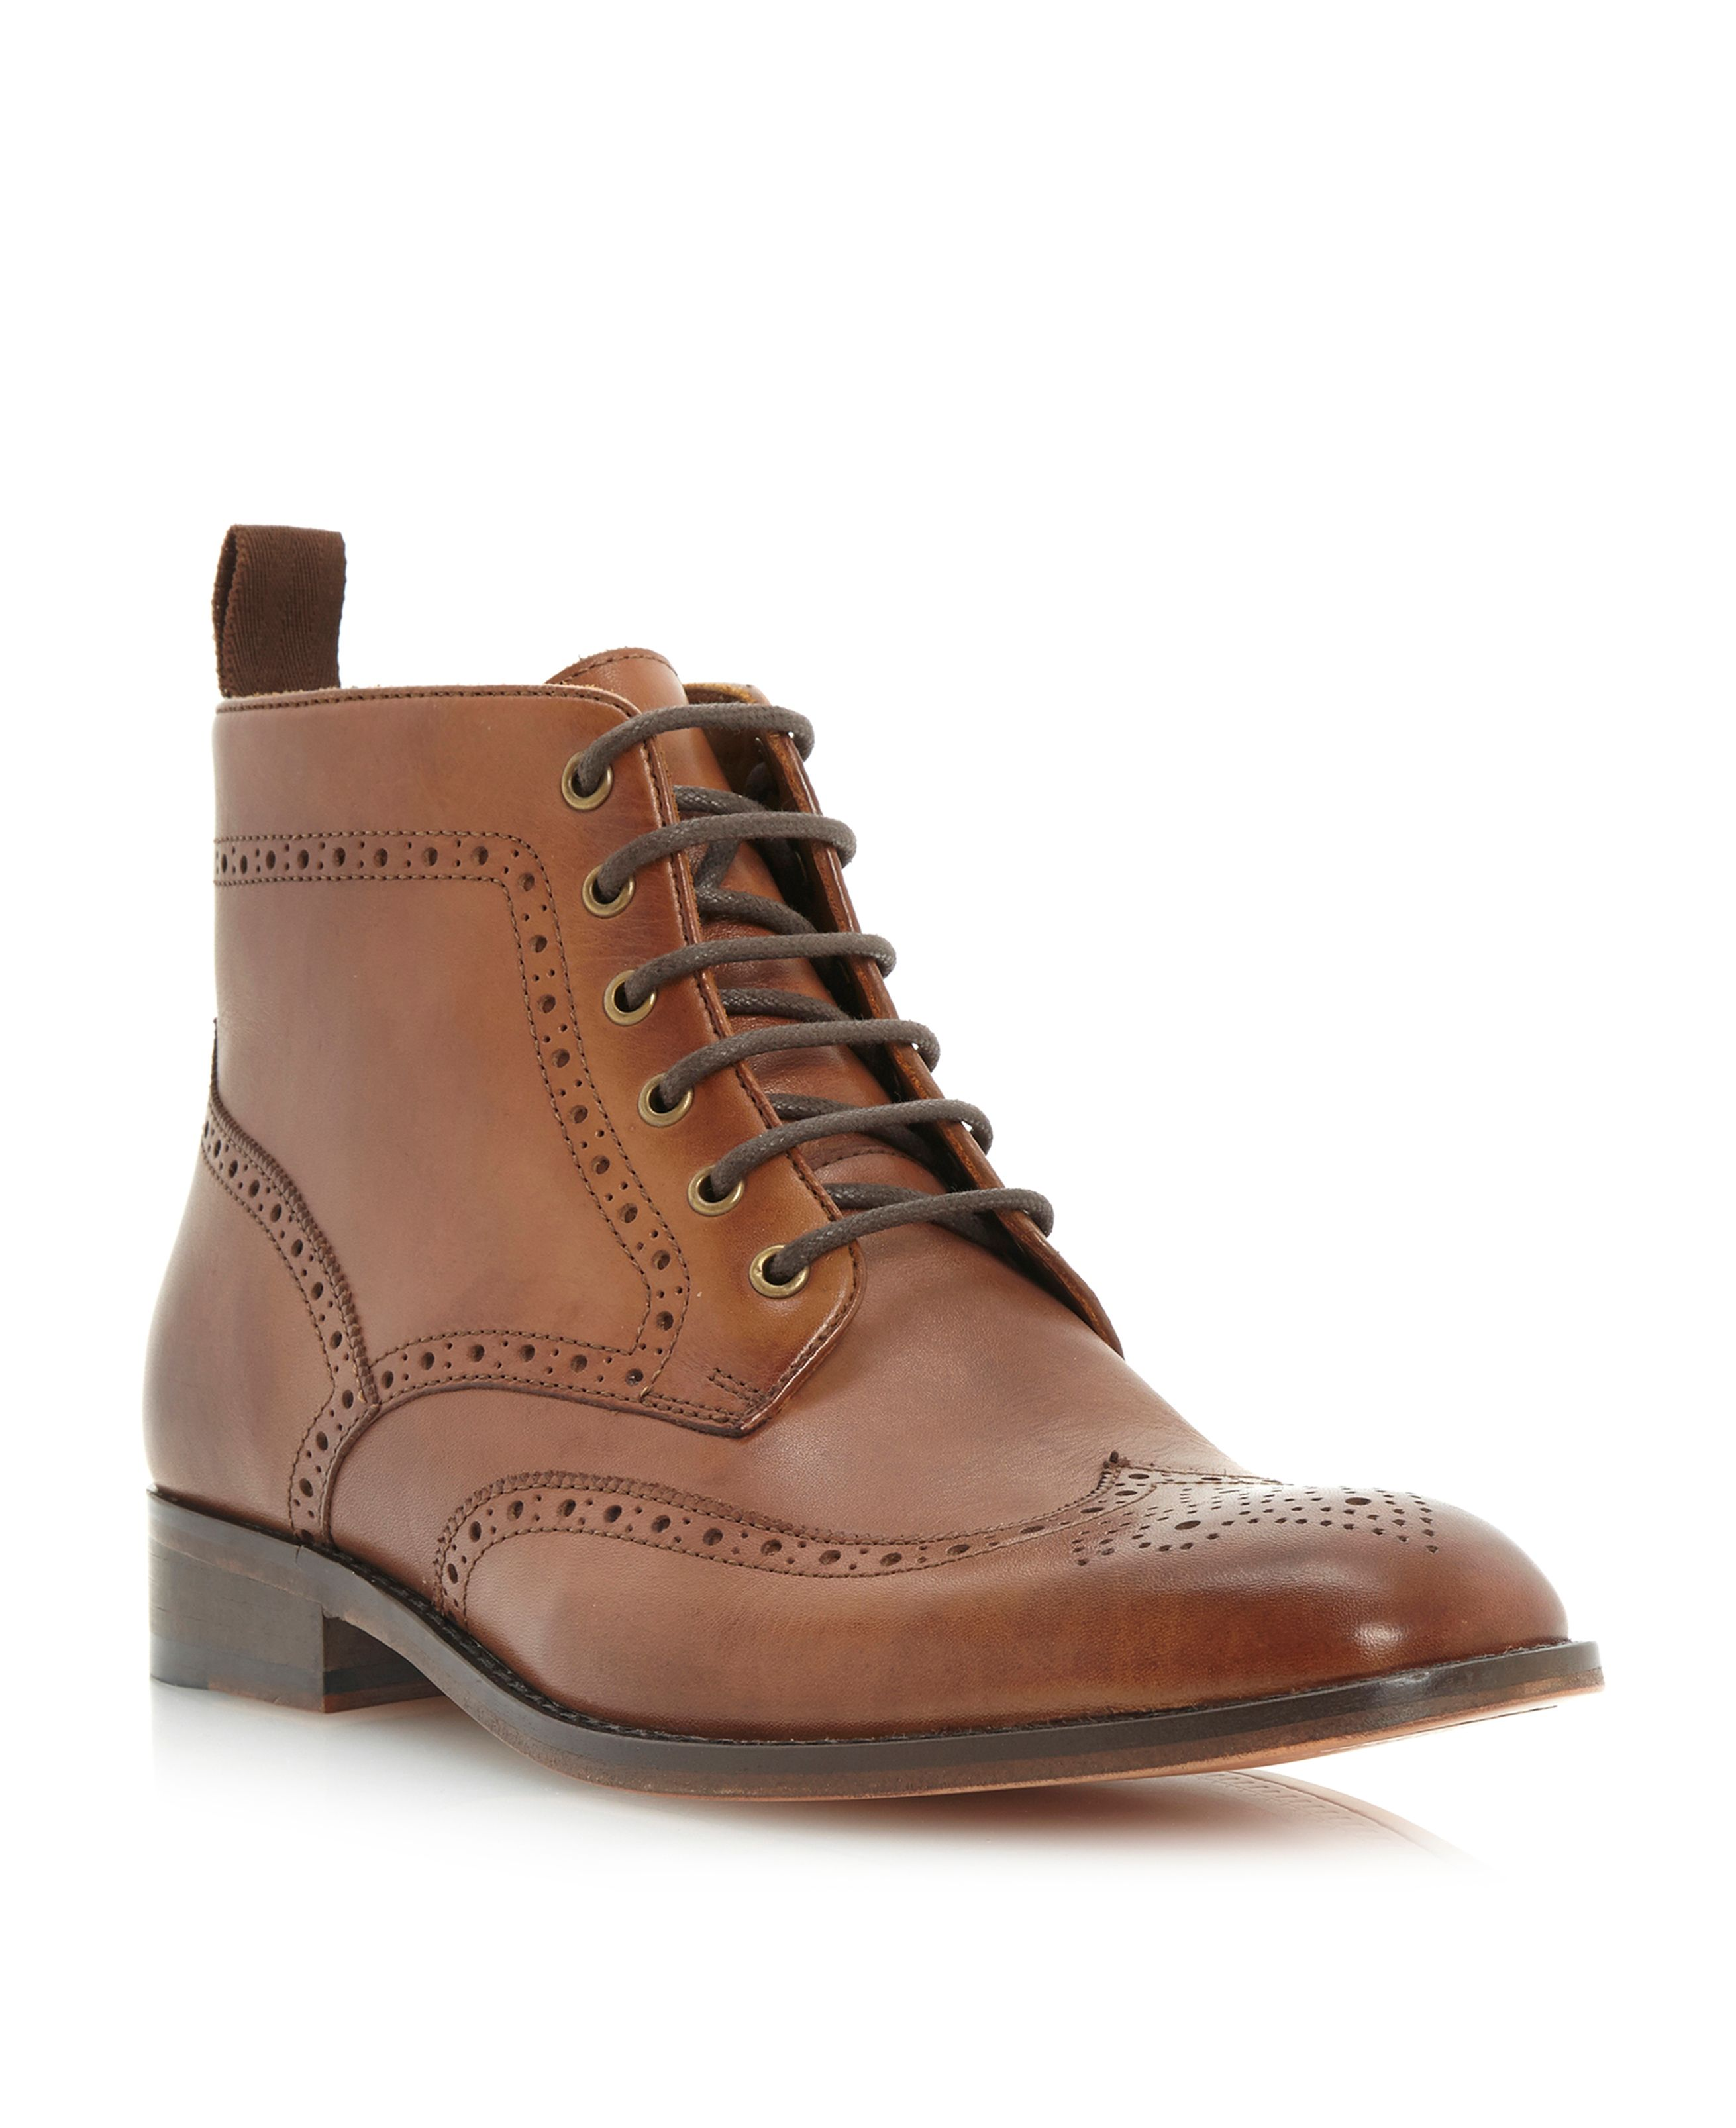 Marylebone brogue lace boot